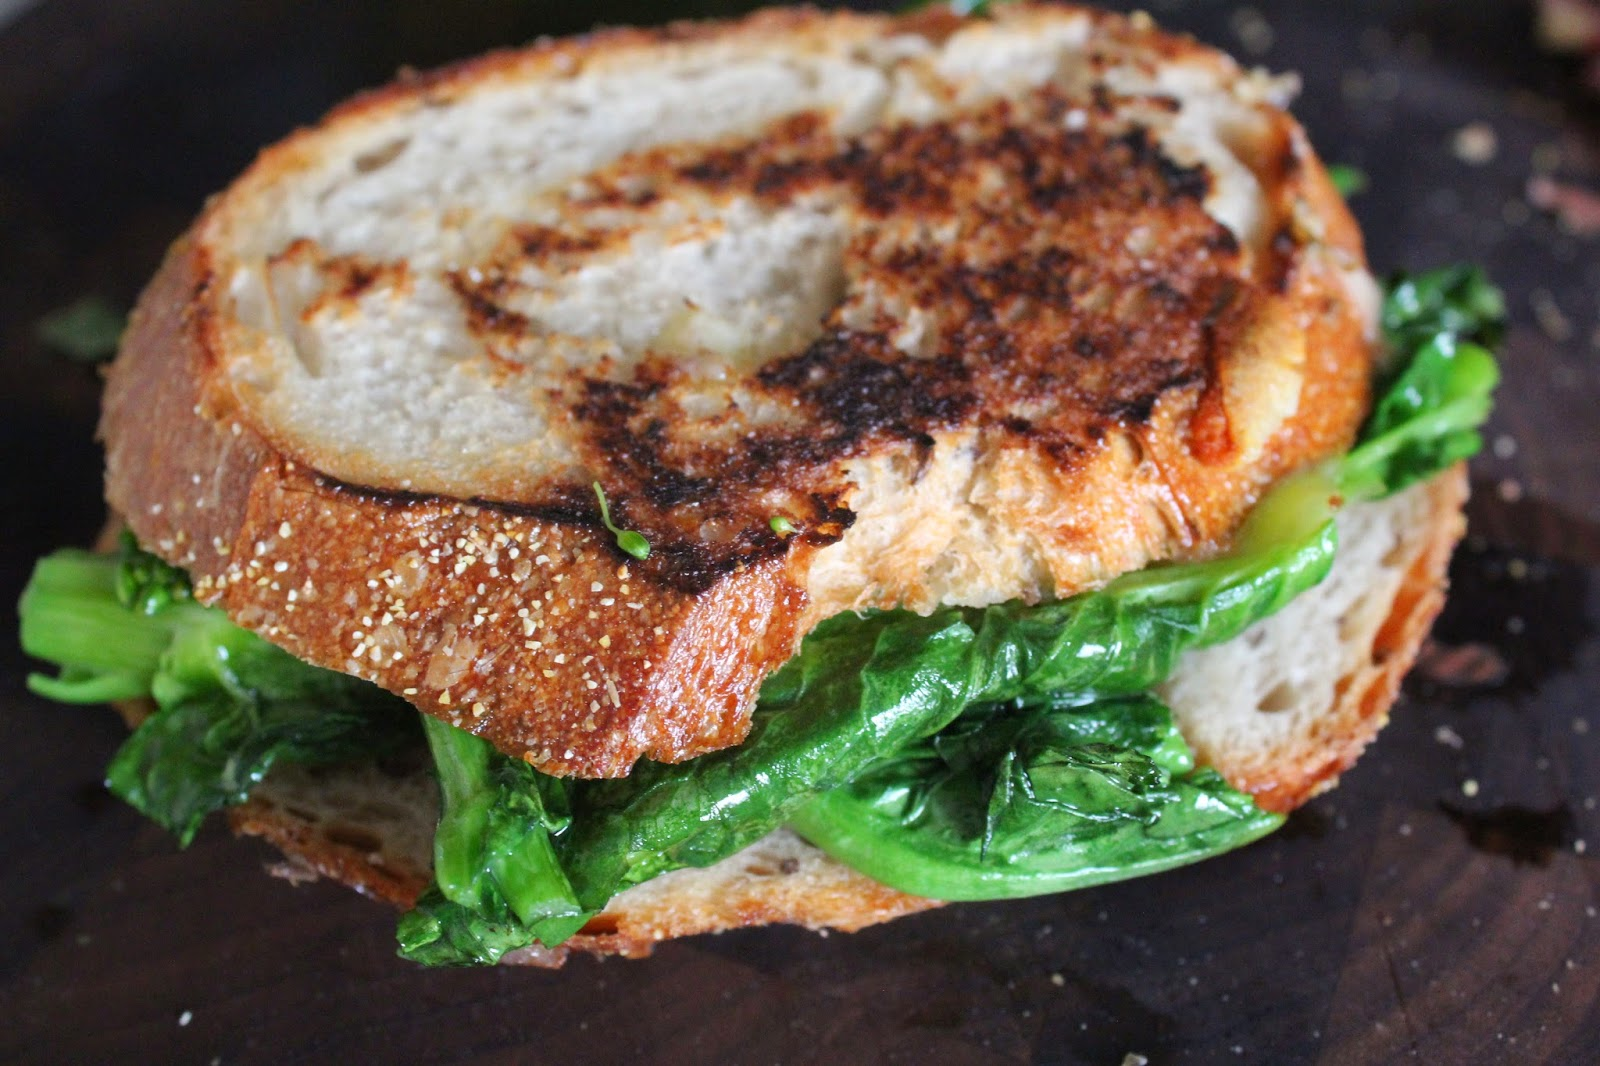 Broccoli Rabe Three Ways: Broccoli Rabe and Vivace Grilled Cheese